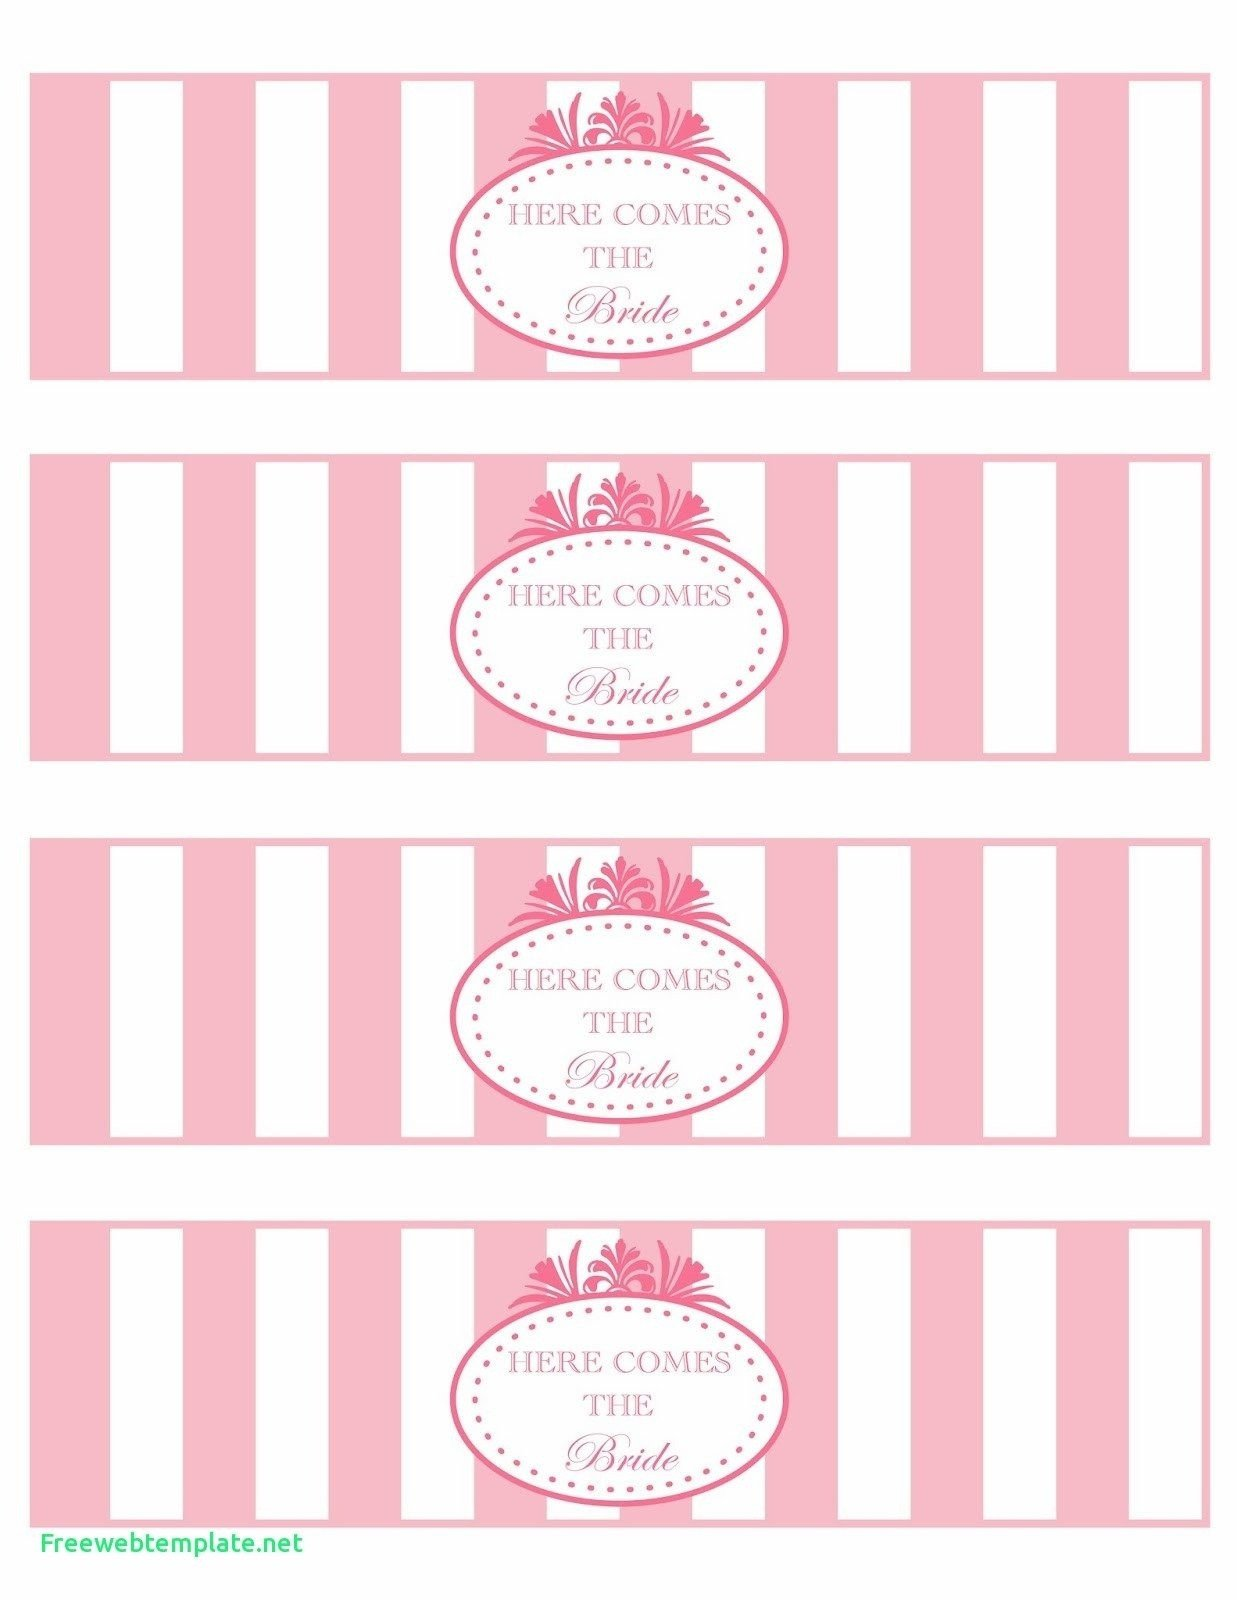 Free Water Bottle Label Template Printable Water Bottle Labels Free Templates